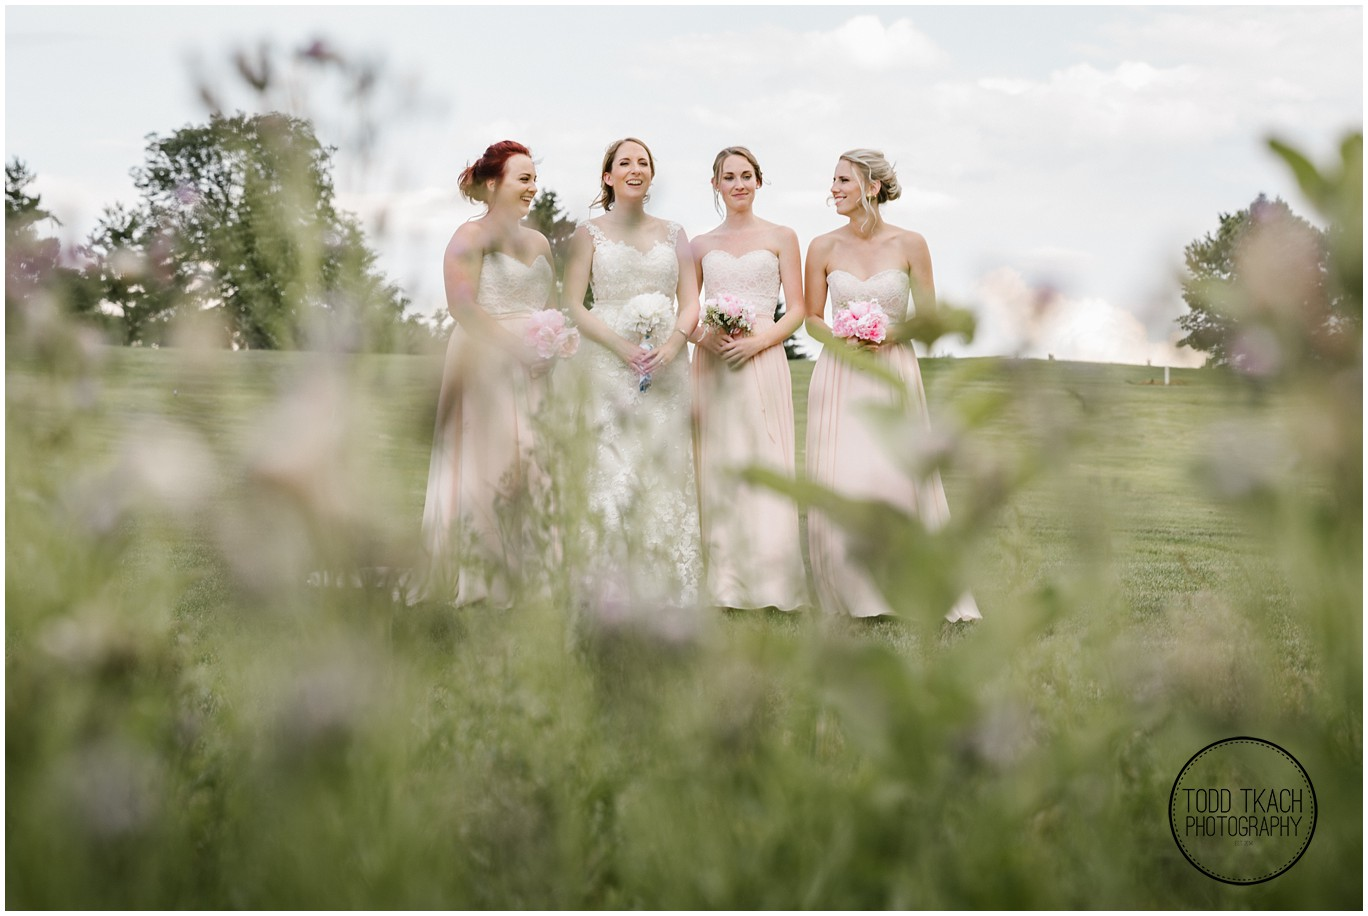 Phil & Caitlin - Seven Oaks - Bridesmaids Portrait